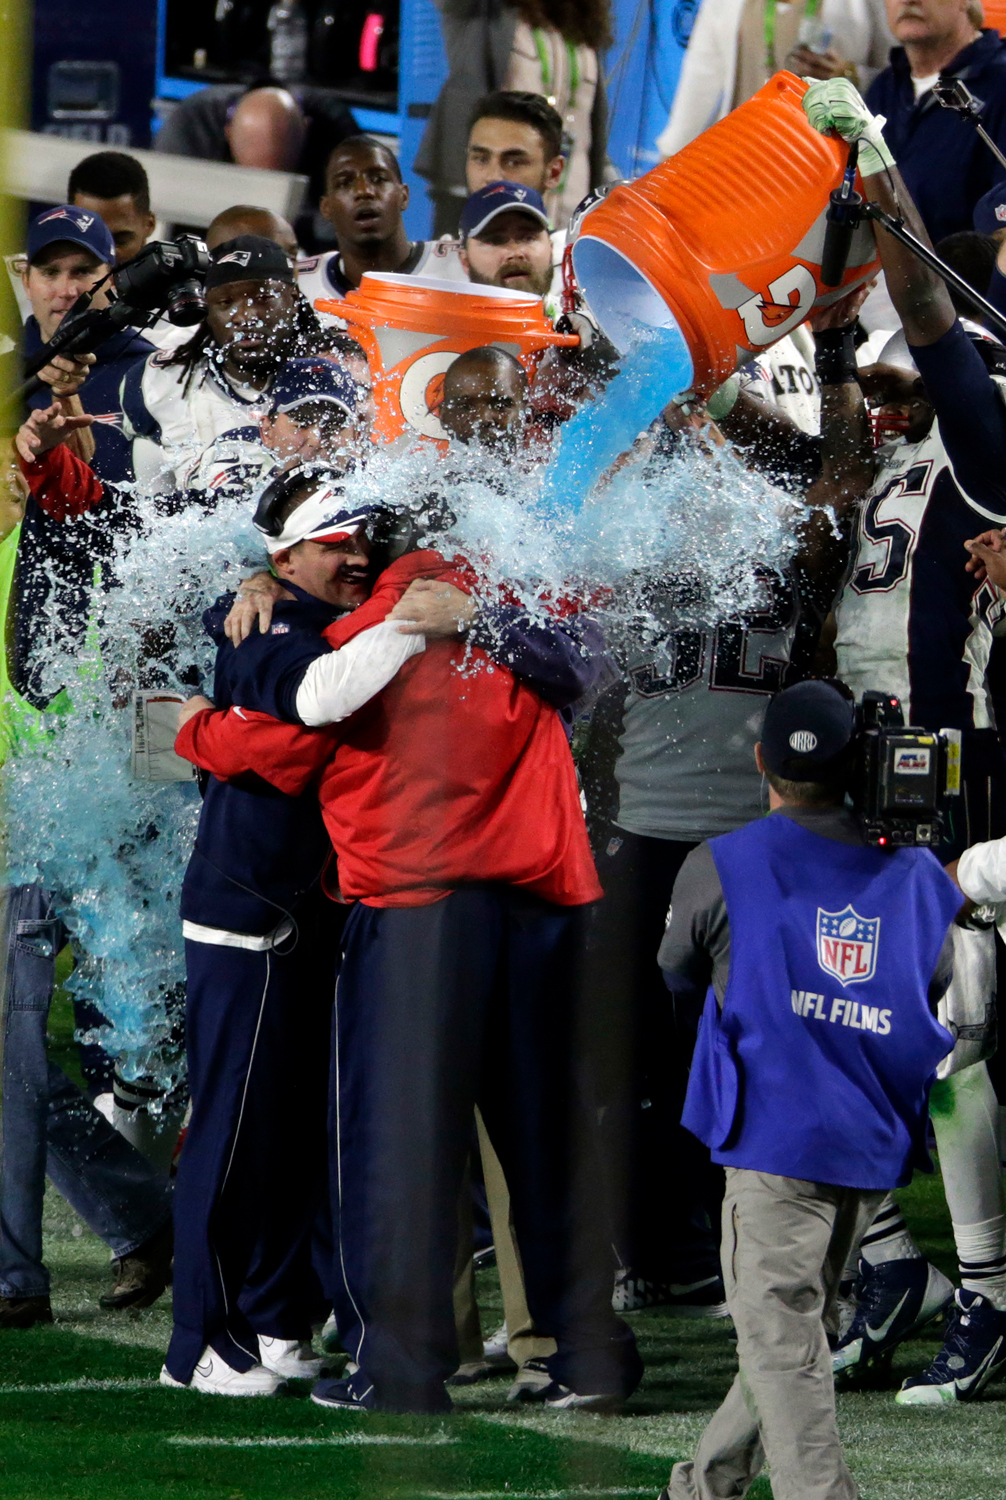 Patriots coach Bill Belichick is doused with Gatorade after winning Super Bowl XLIX on February 1, 2015, at the University of Phoenix Stadium in Glendale, Arizona.